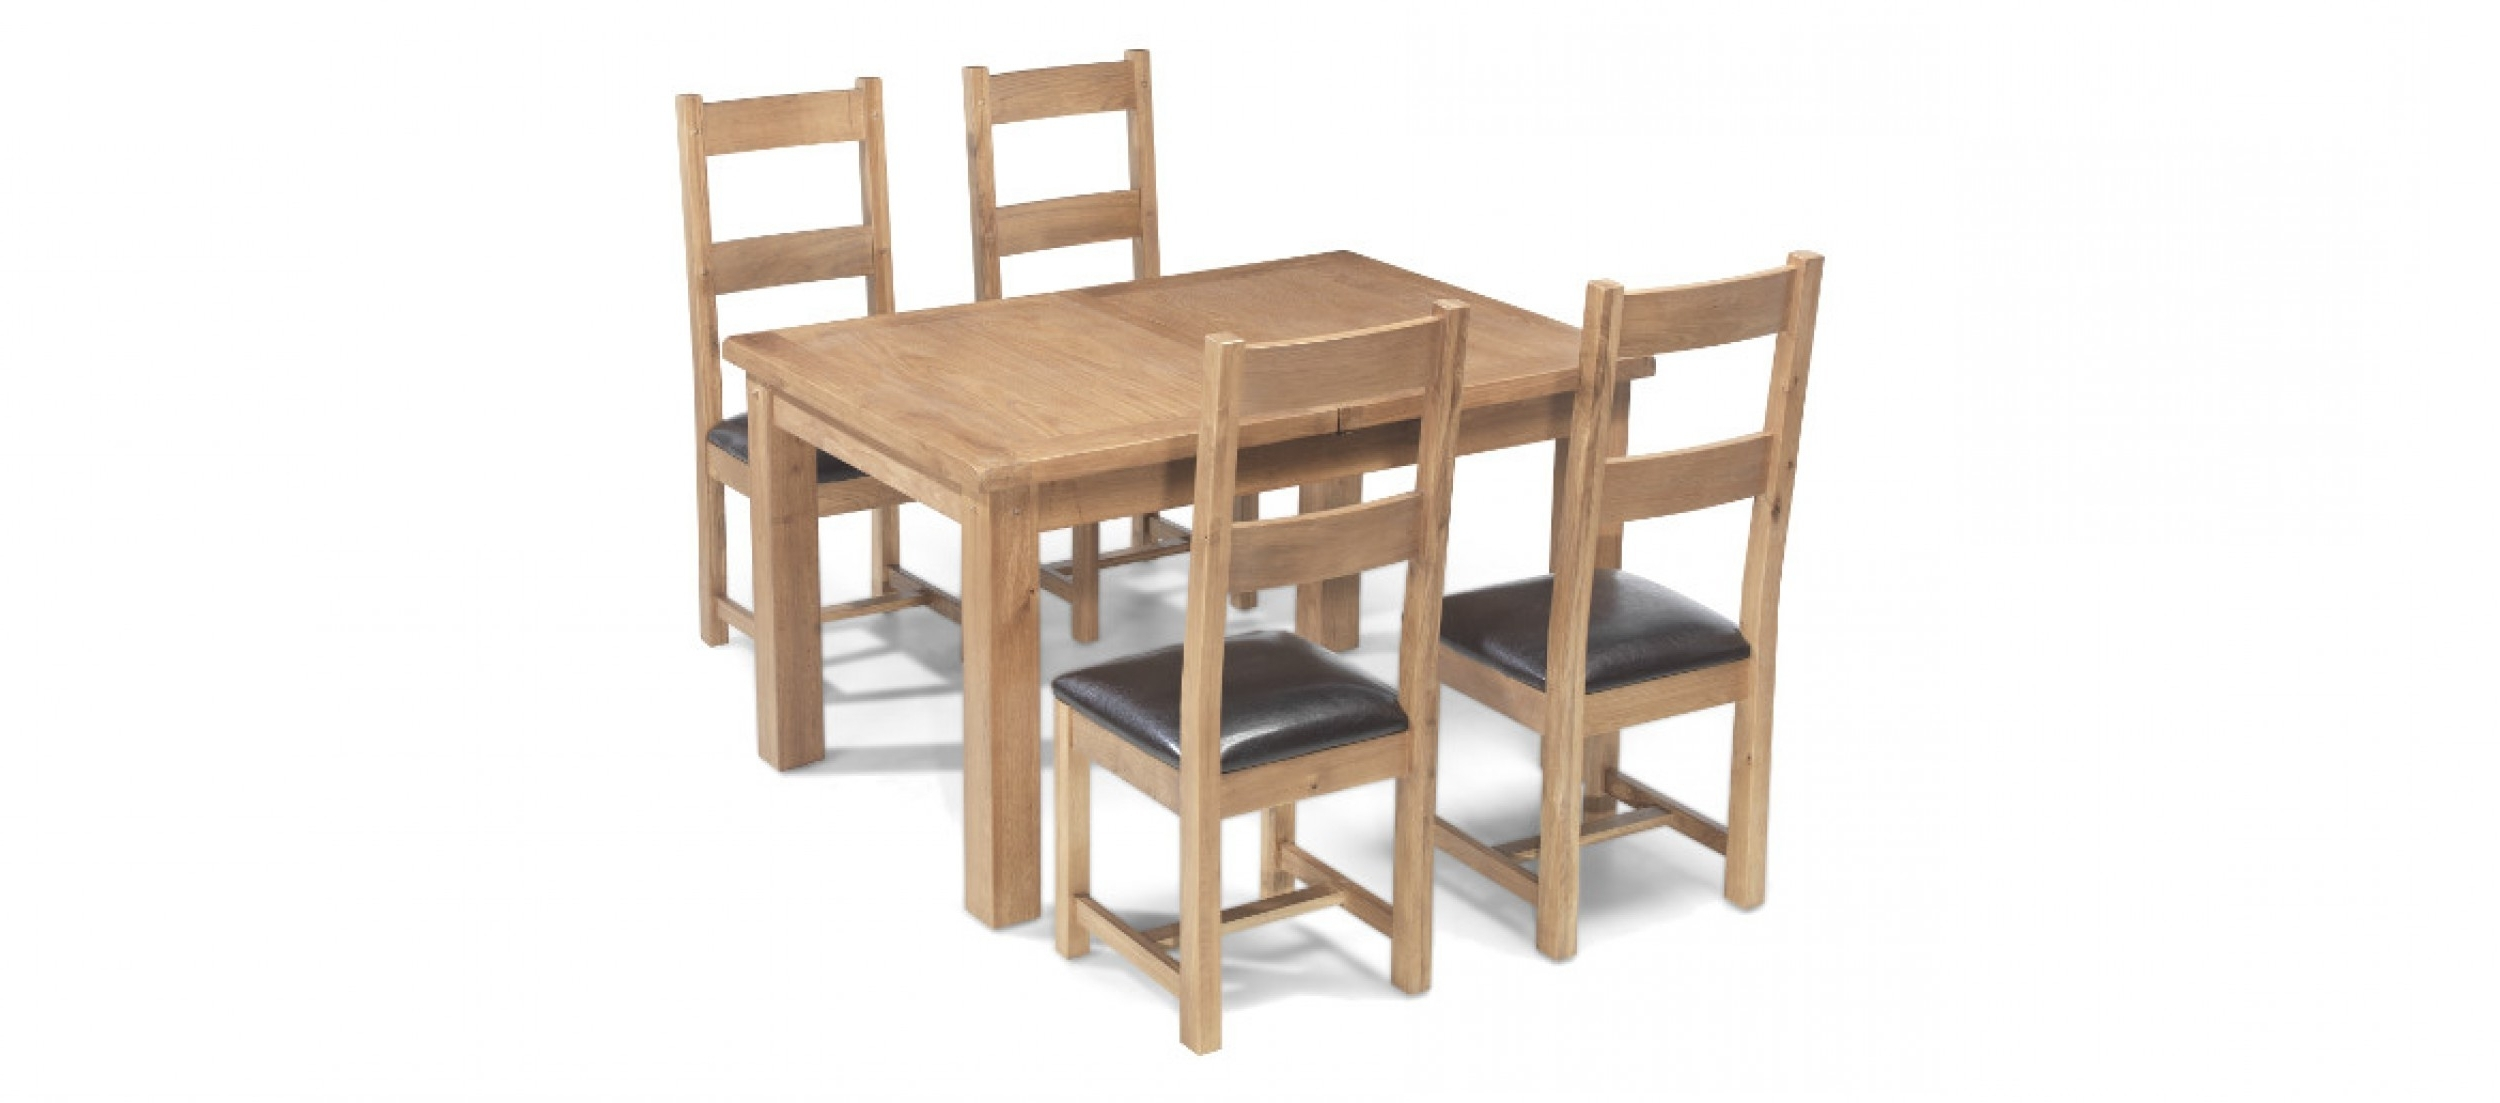 Quercus pertaining to Most Up-to-Date Extendable Oak Dining Tables And Chairs